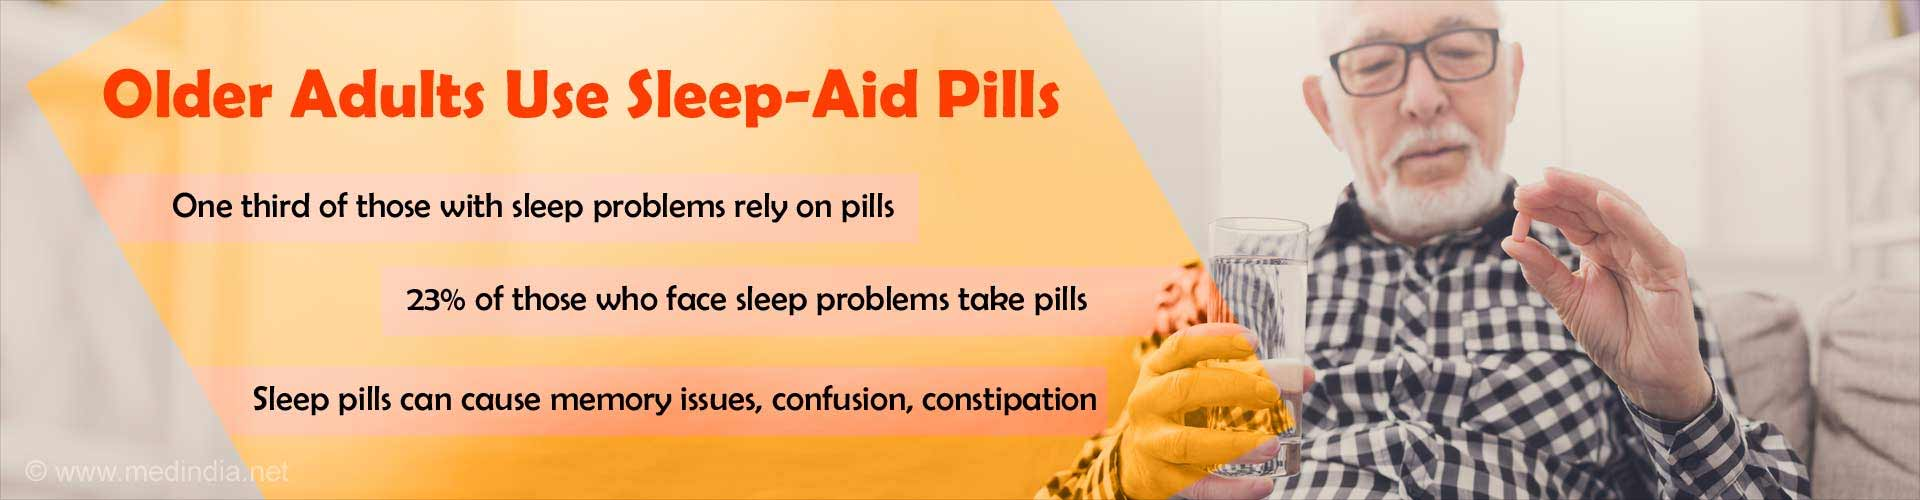 Sleep Pills in Old Age Can Hamper Health